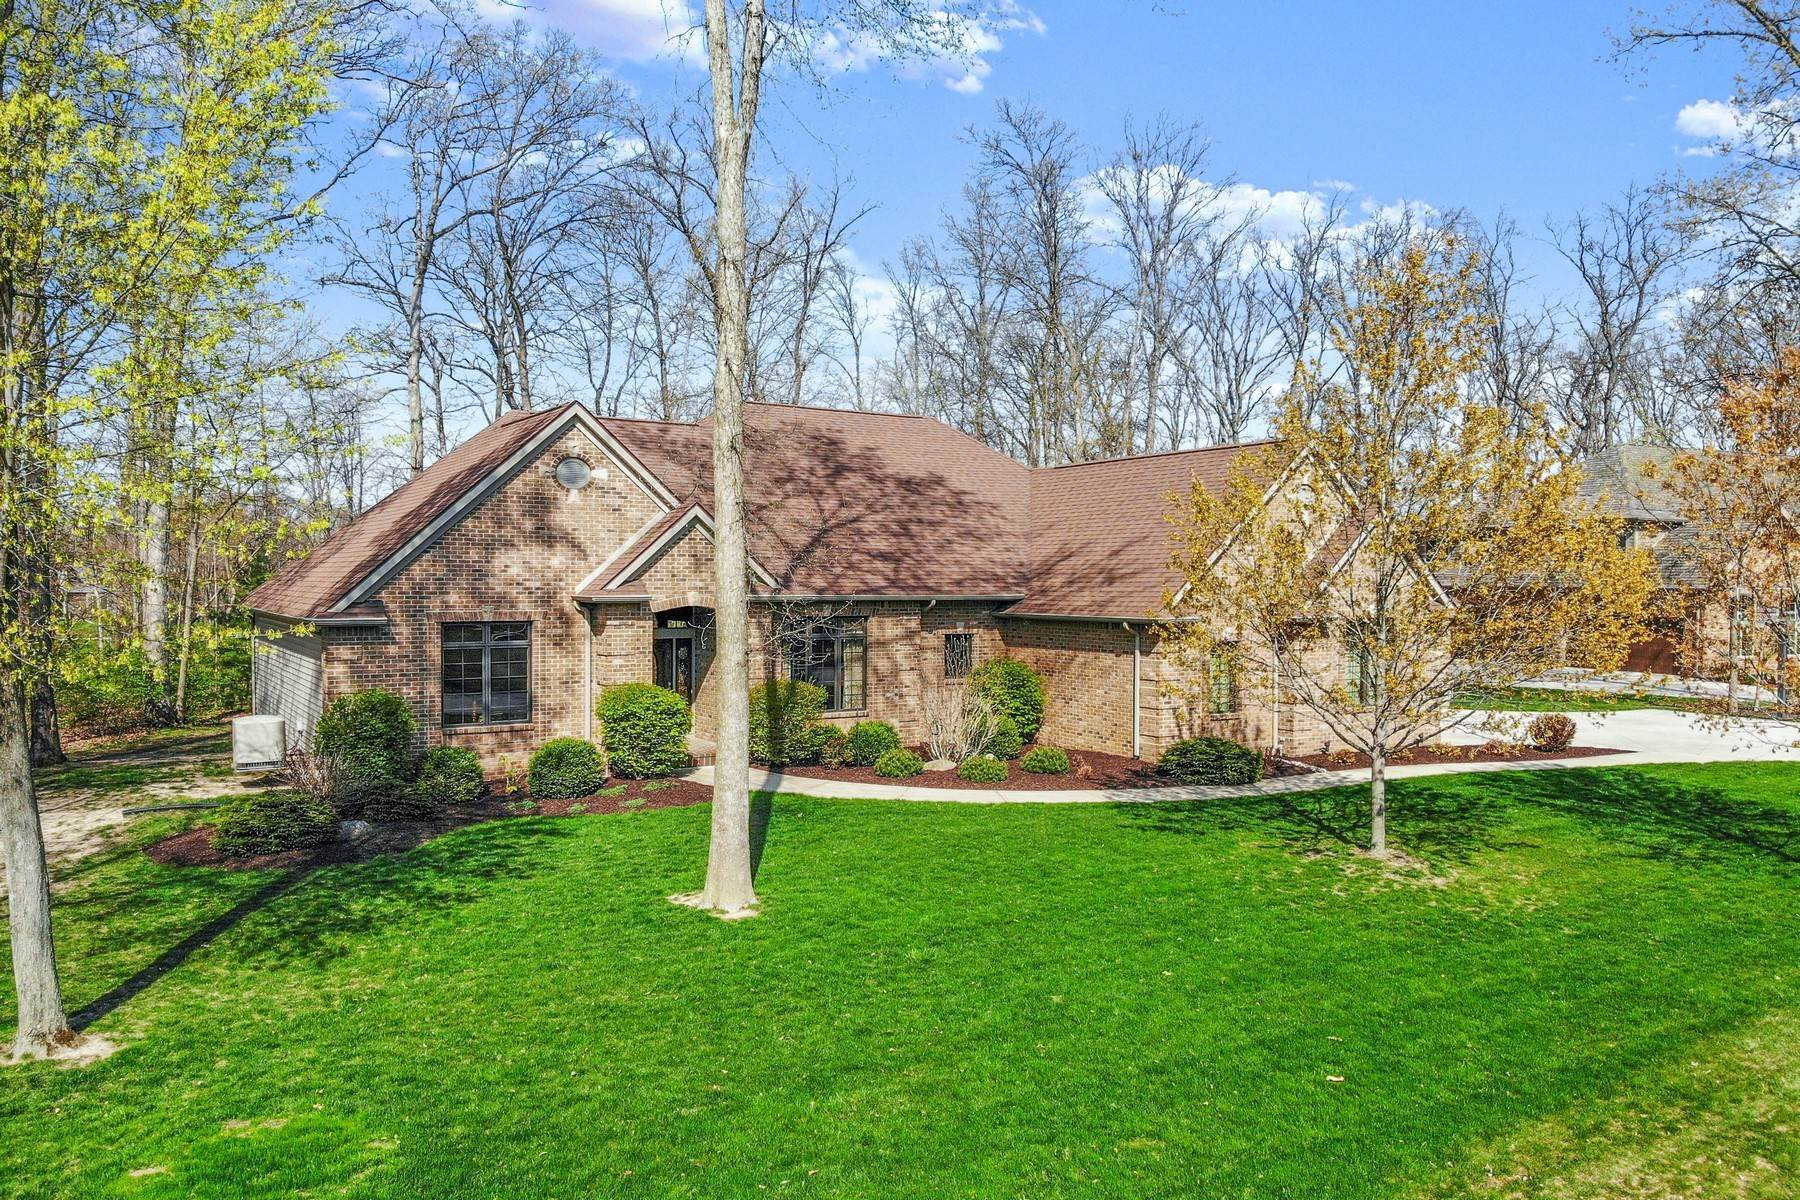 Single Family Homes for Sale at Ranch on Basement in NW Fort Wayne 15917 Cascade Bluff Court Fort Wayne, Indiana 46845 United States